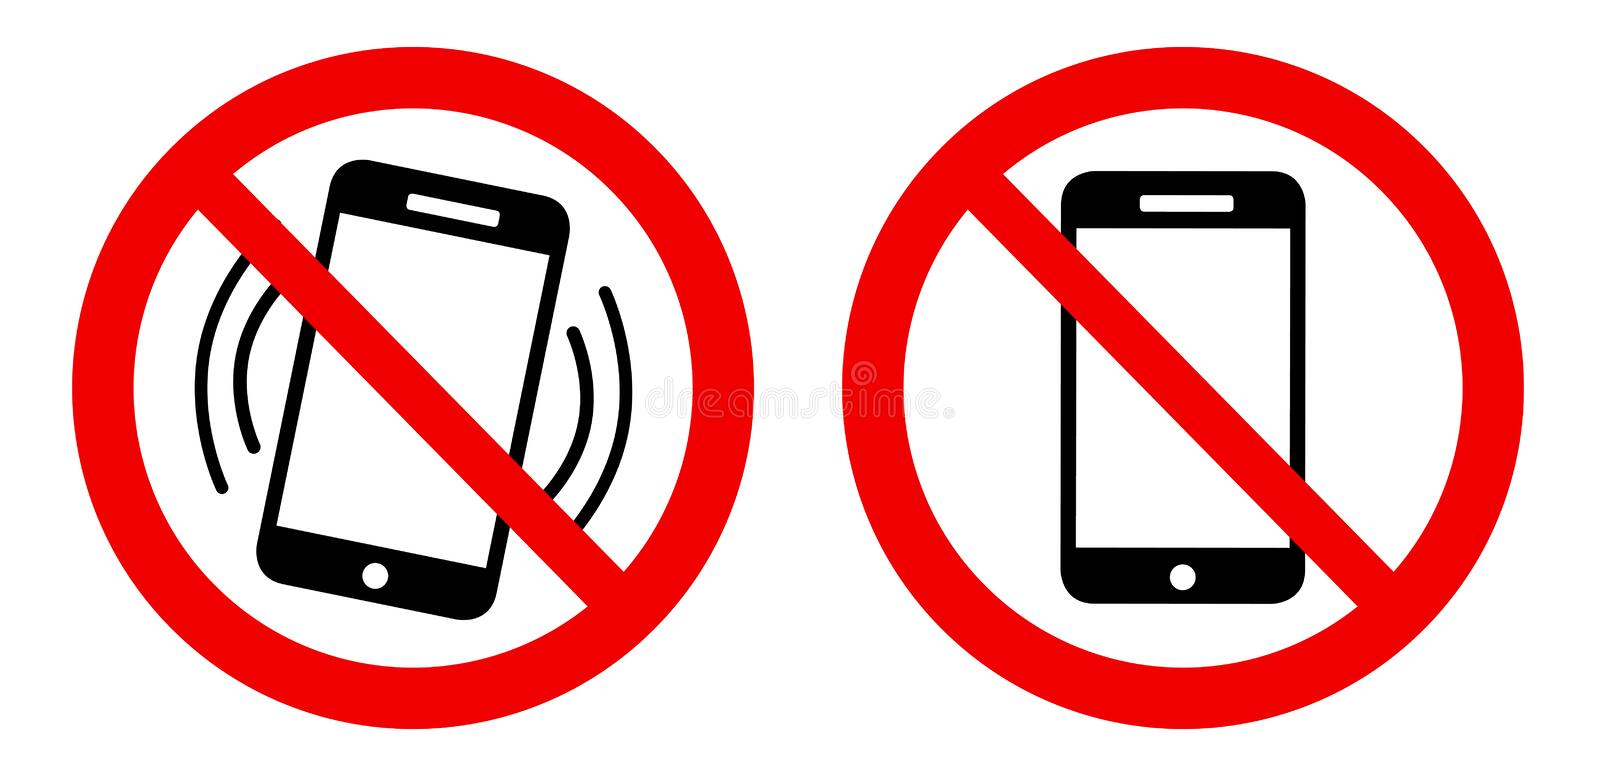 No cell phone - Mobile phone forbidden - mute sign royalty free illustration